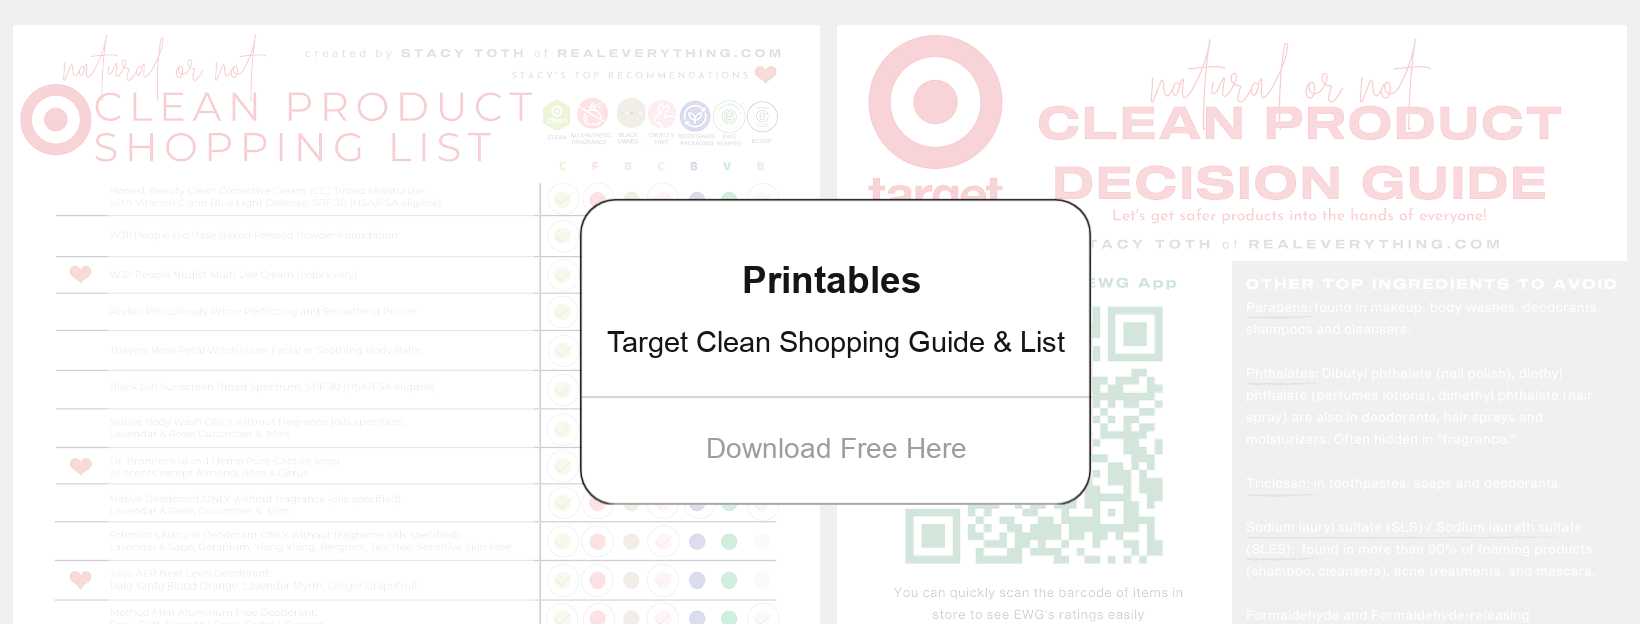 Target Clean Product Guide Printables